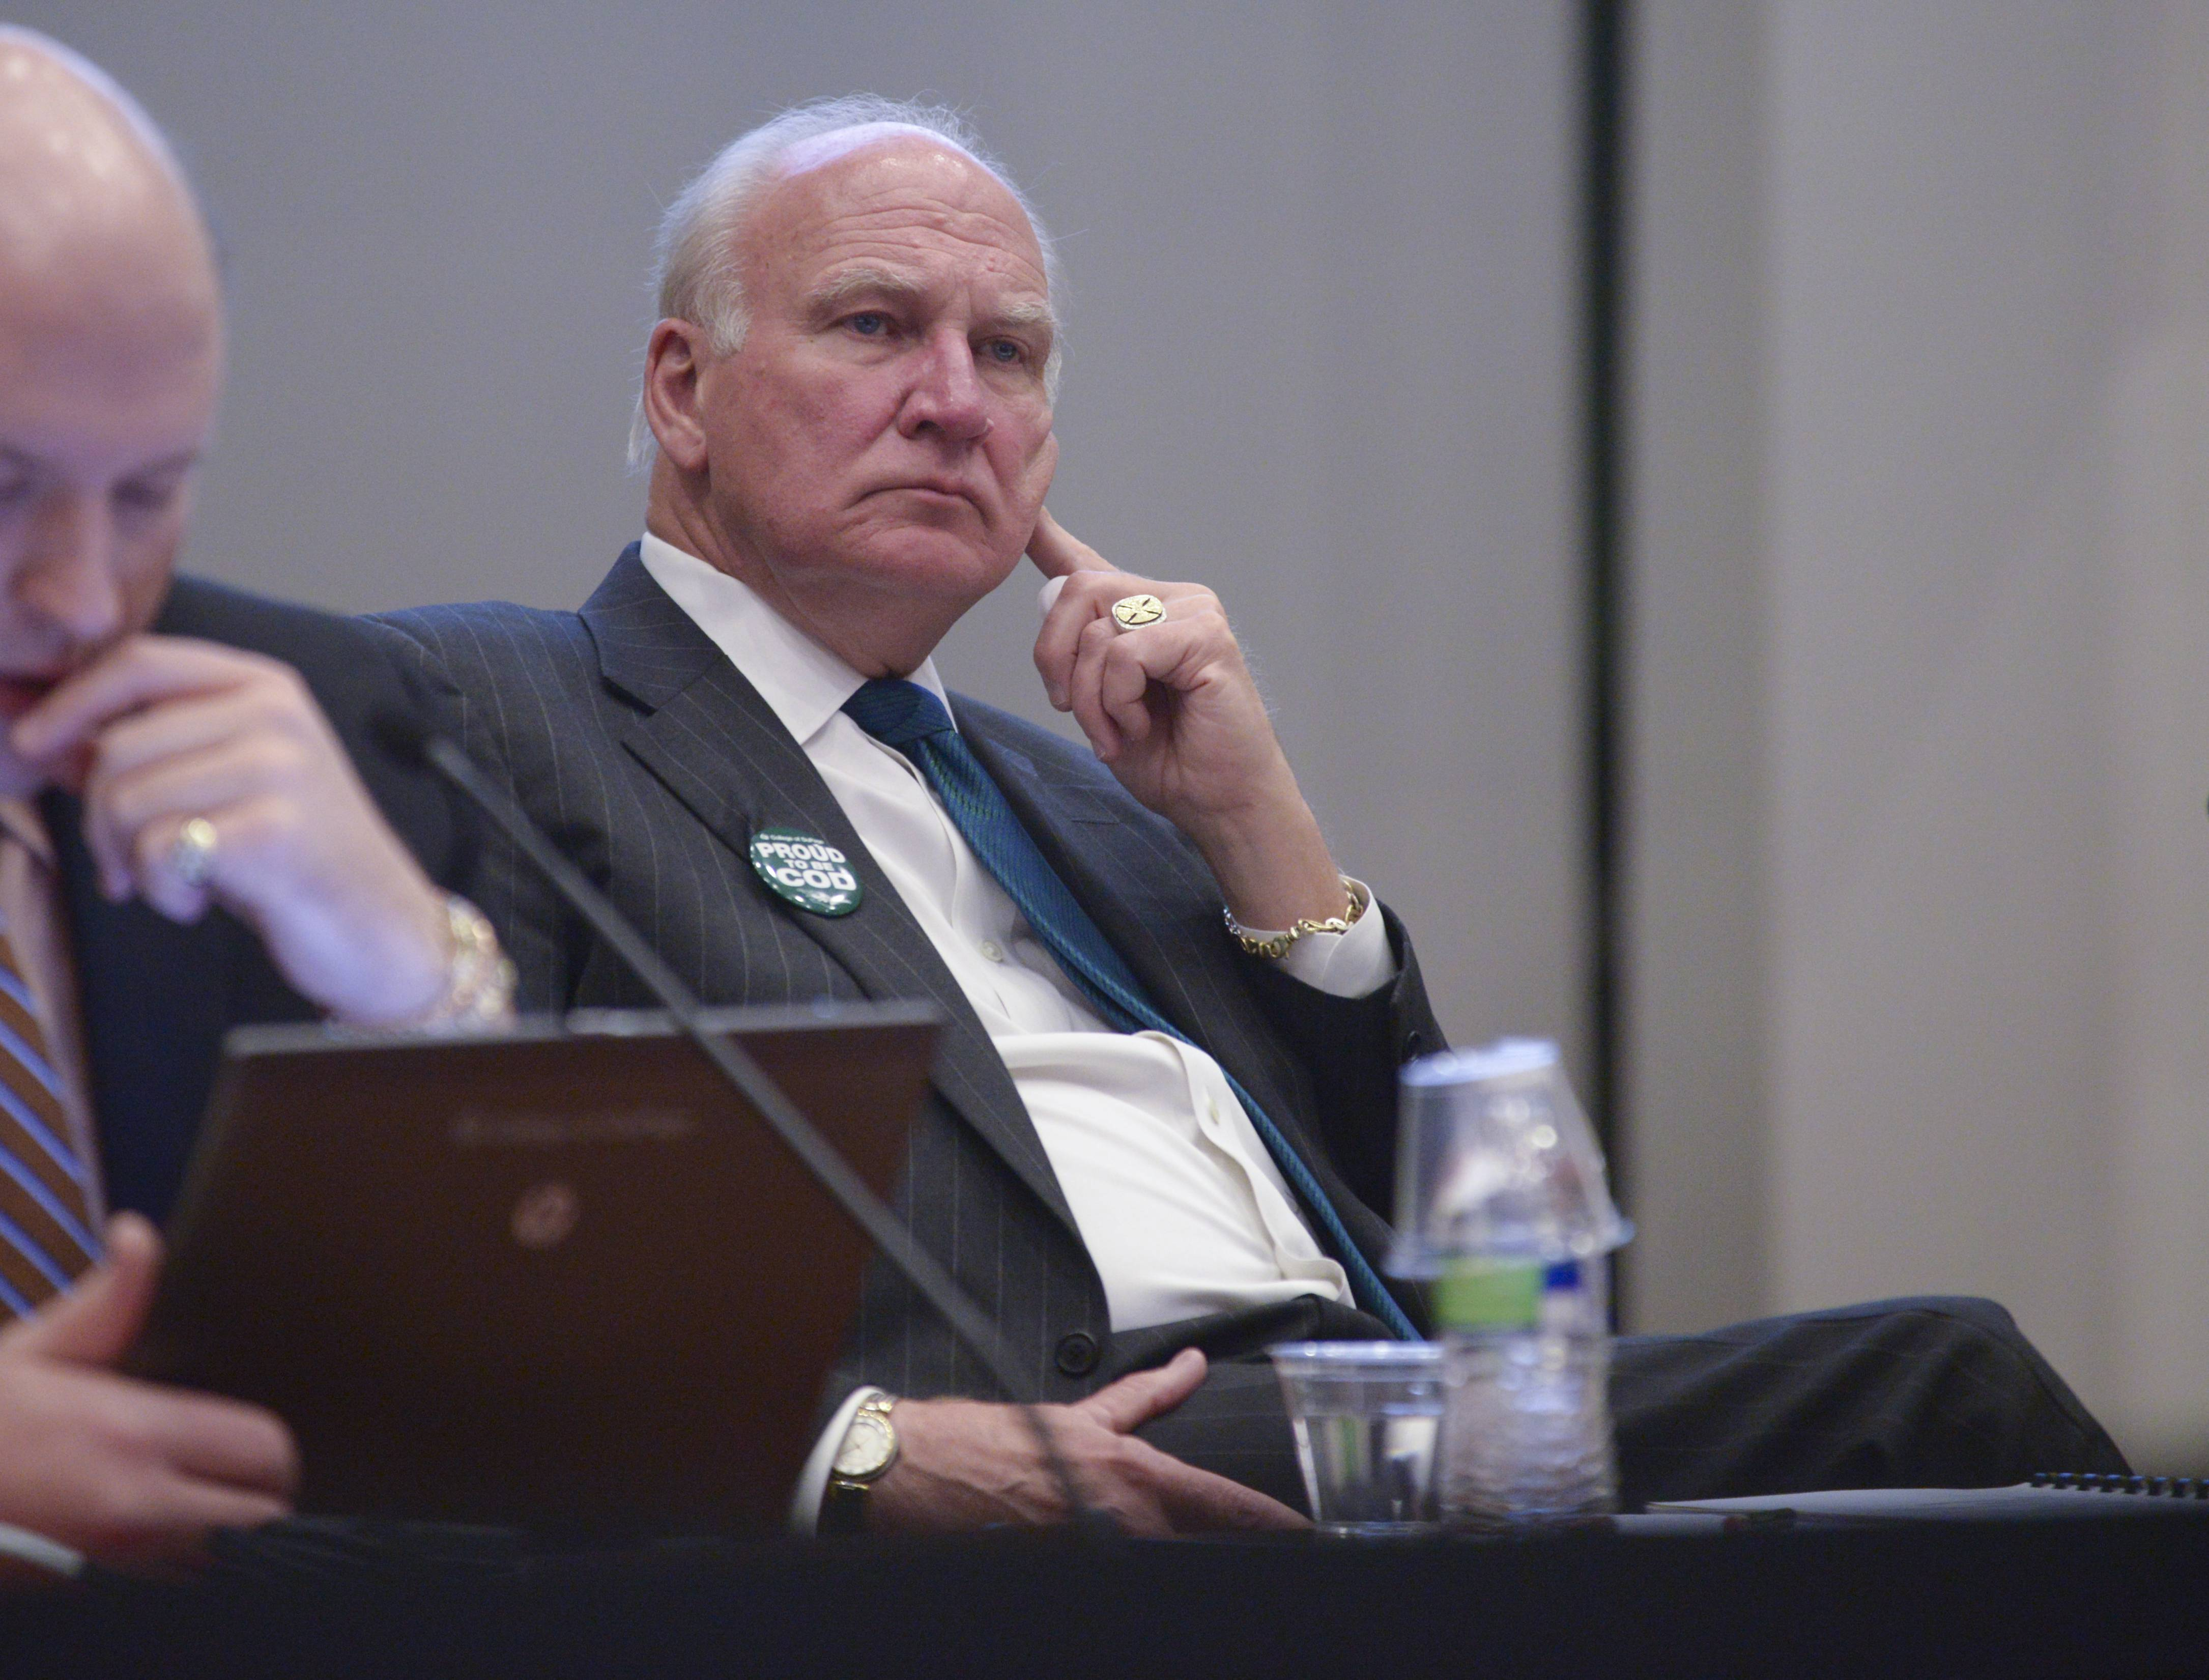 Former College of DuPage President Robert Breuder listened to the residents speak out against the $763,000 buyout of his contract before the deal was approved in January 2015.